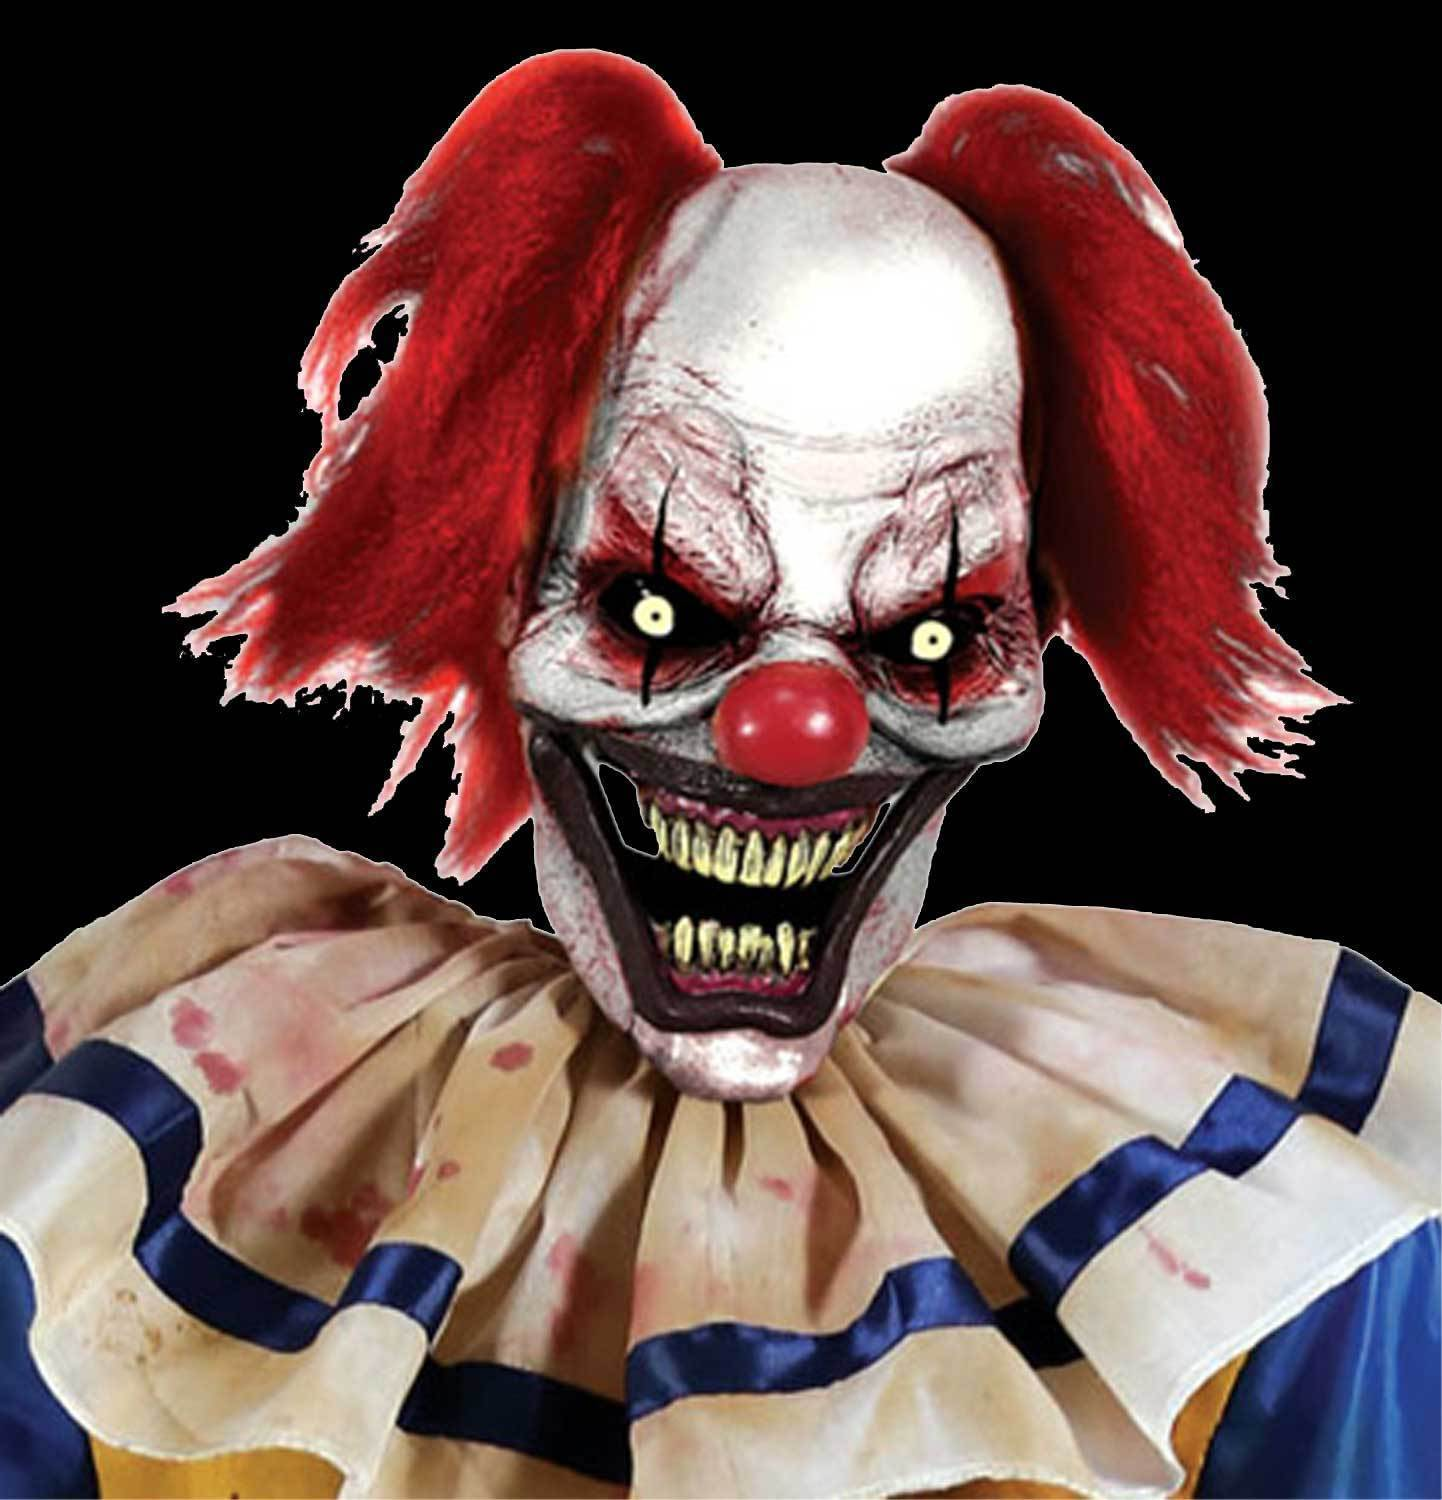 Life Size Creepy ANIMATED SWINGING CLOWN ZOMBIE Haunted House Prop Decoration